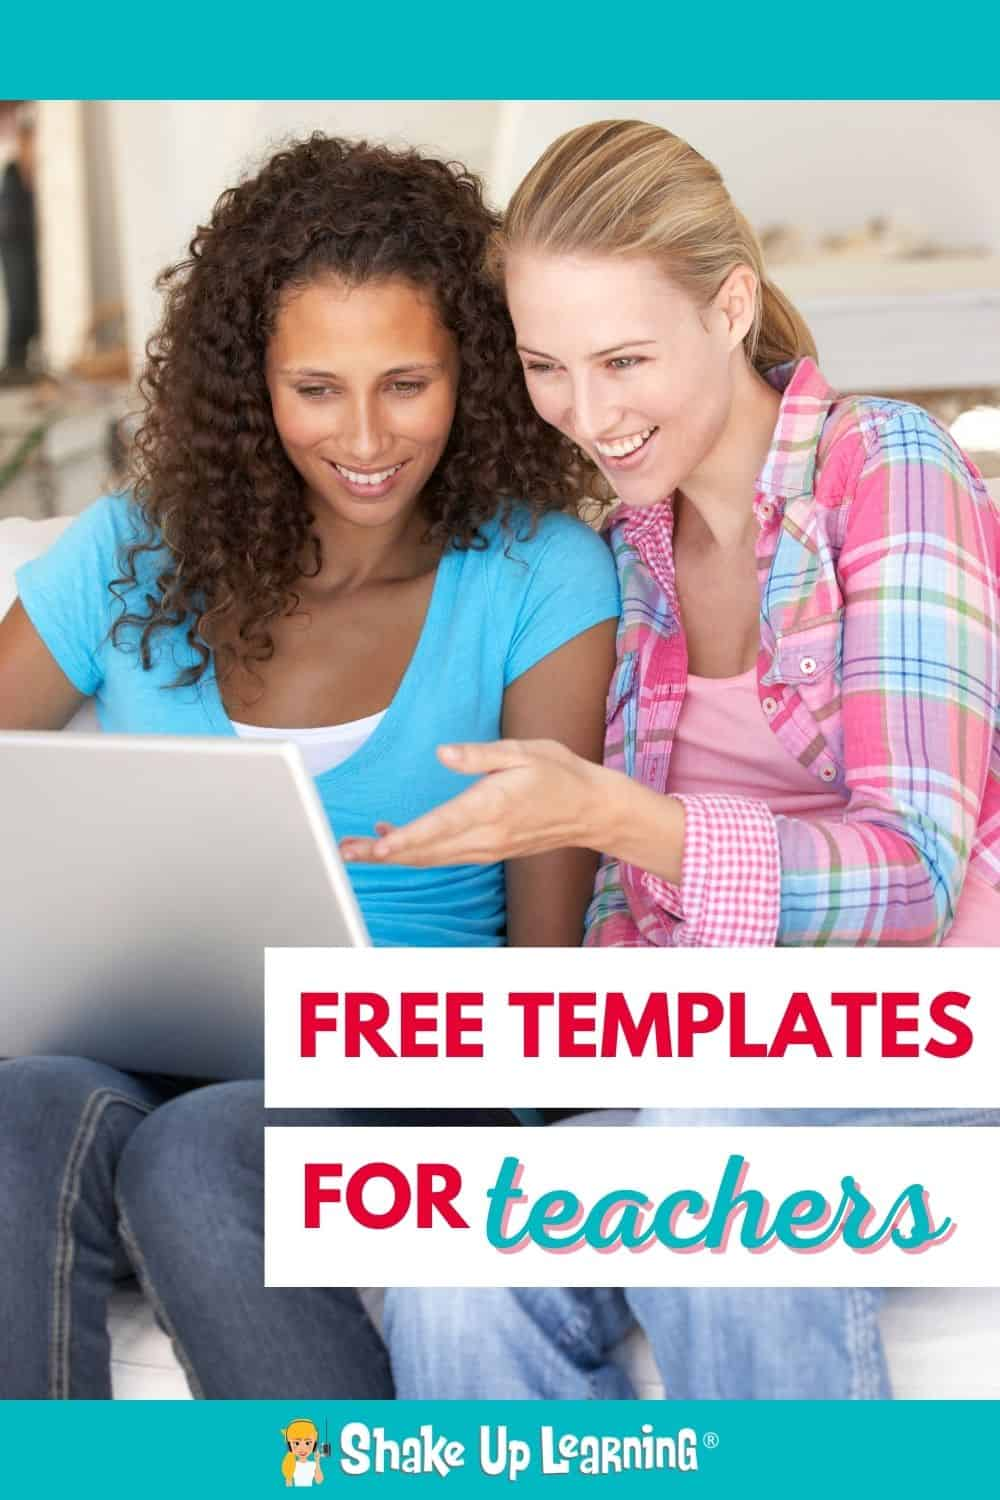 FREE Templates for Teachers: Where to Find Them and How to Create Them – SULS0119